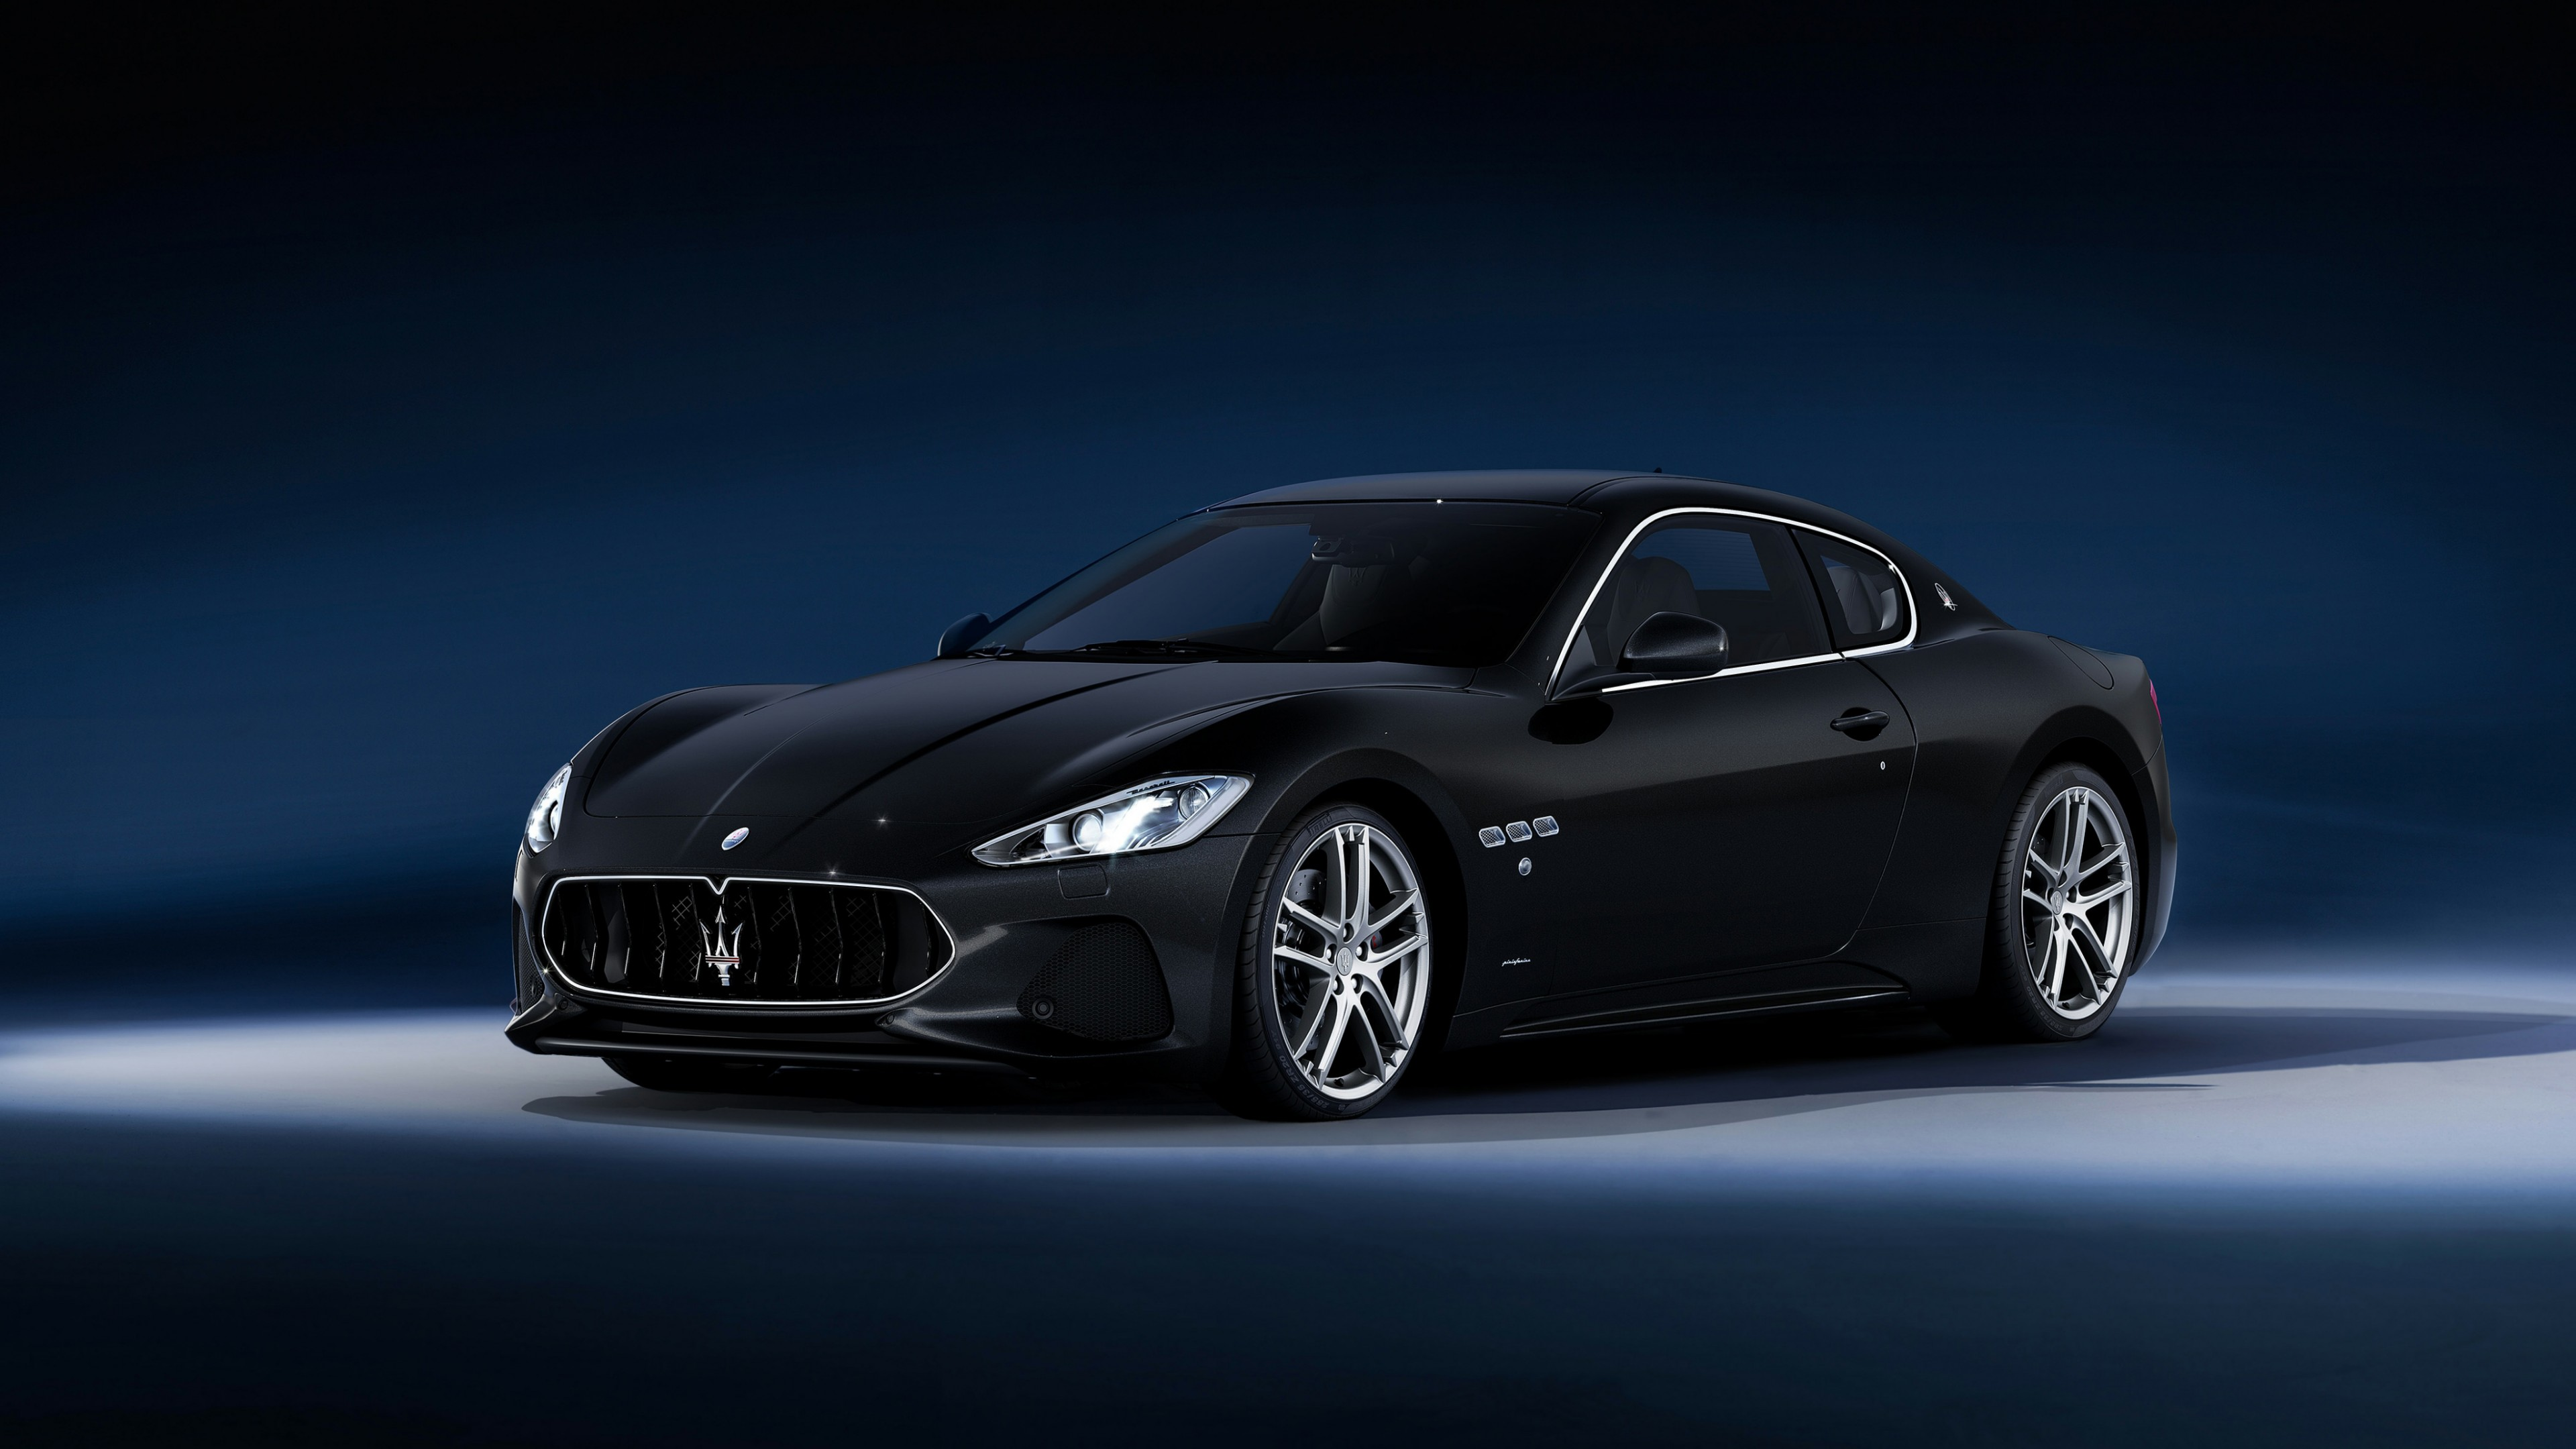 maserati granturismo 2018 wallpaper hd car wallpapers id 7905. Black Bedroom Furniture Sets. Home Design Ideas